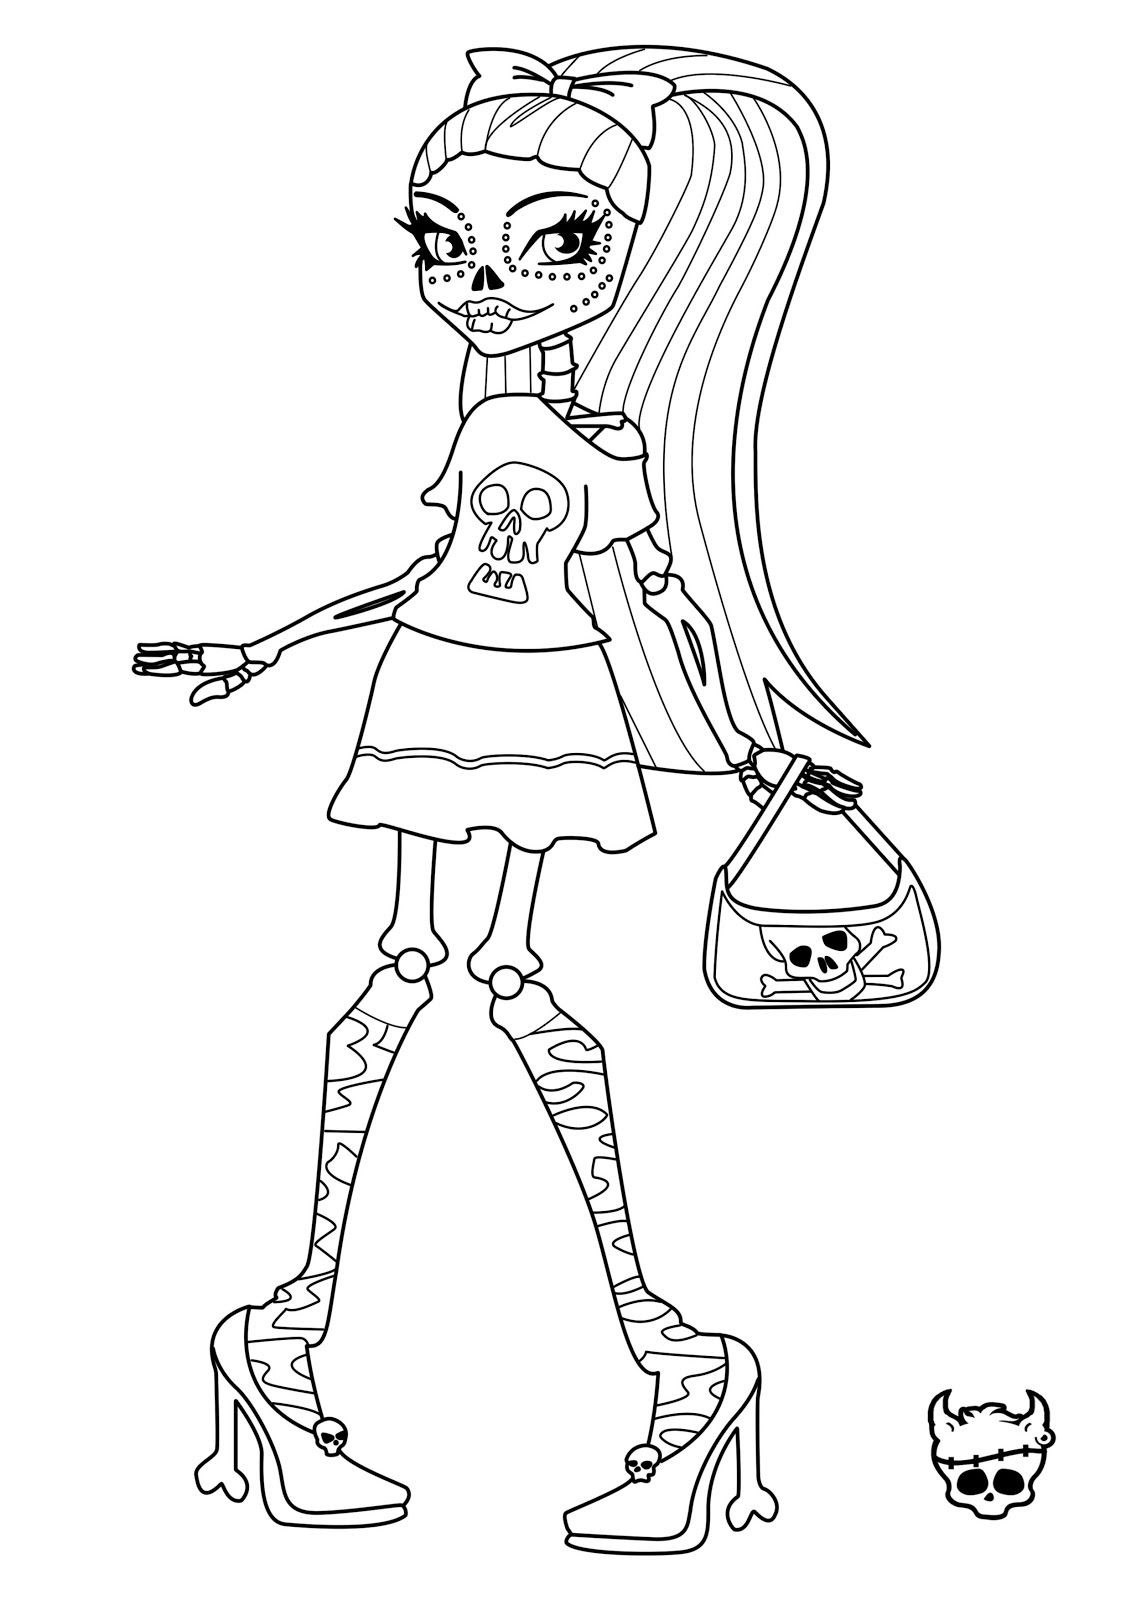 monster high coloring games monster high coloring pages woo jr kids activities high games monster coloring